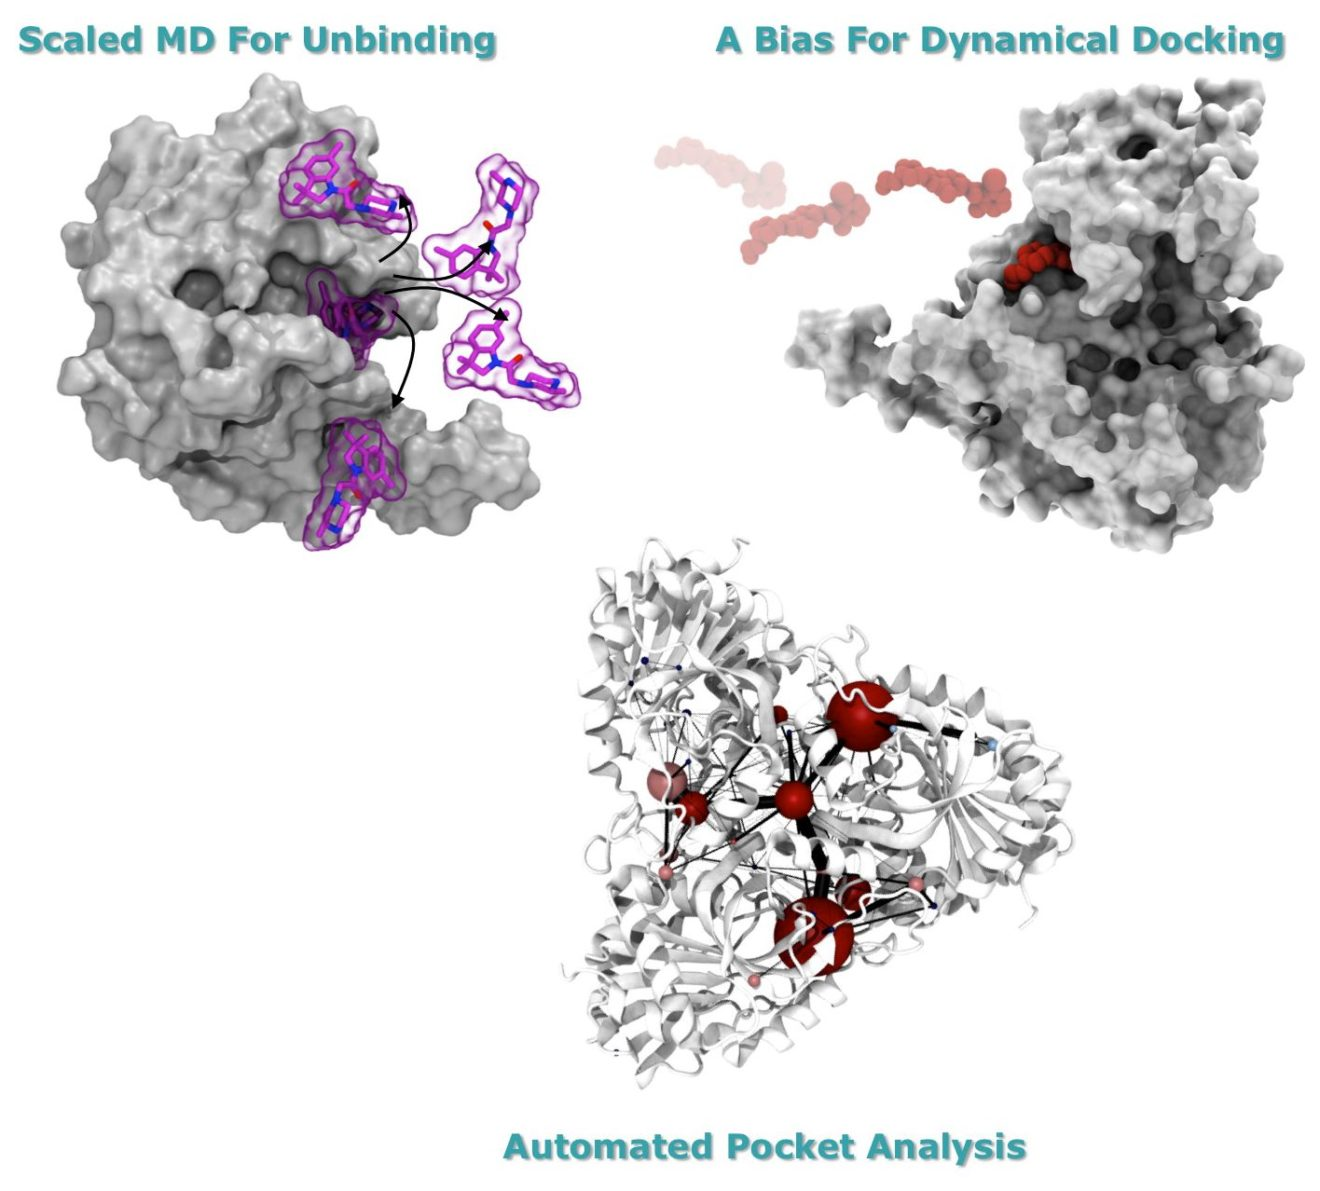 Webinar: Finding a trade-off between speed and accuracy in protein-ligand binding description (2018-04-26)